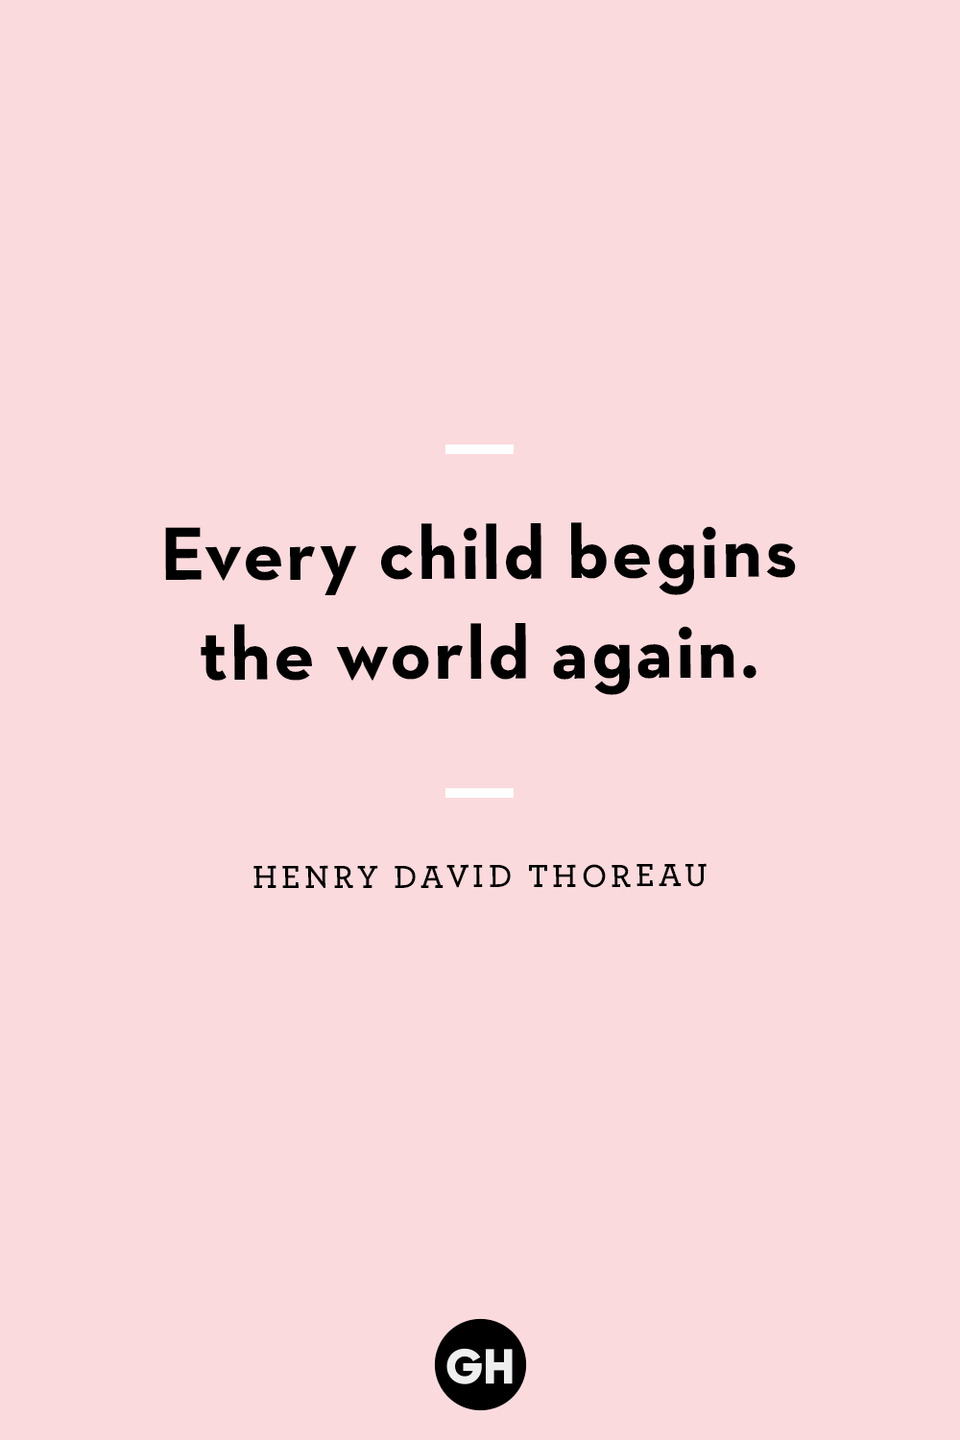 <p>Every child begins the world again.</p>